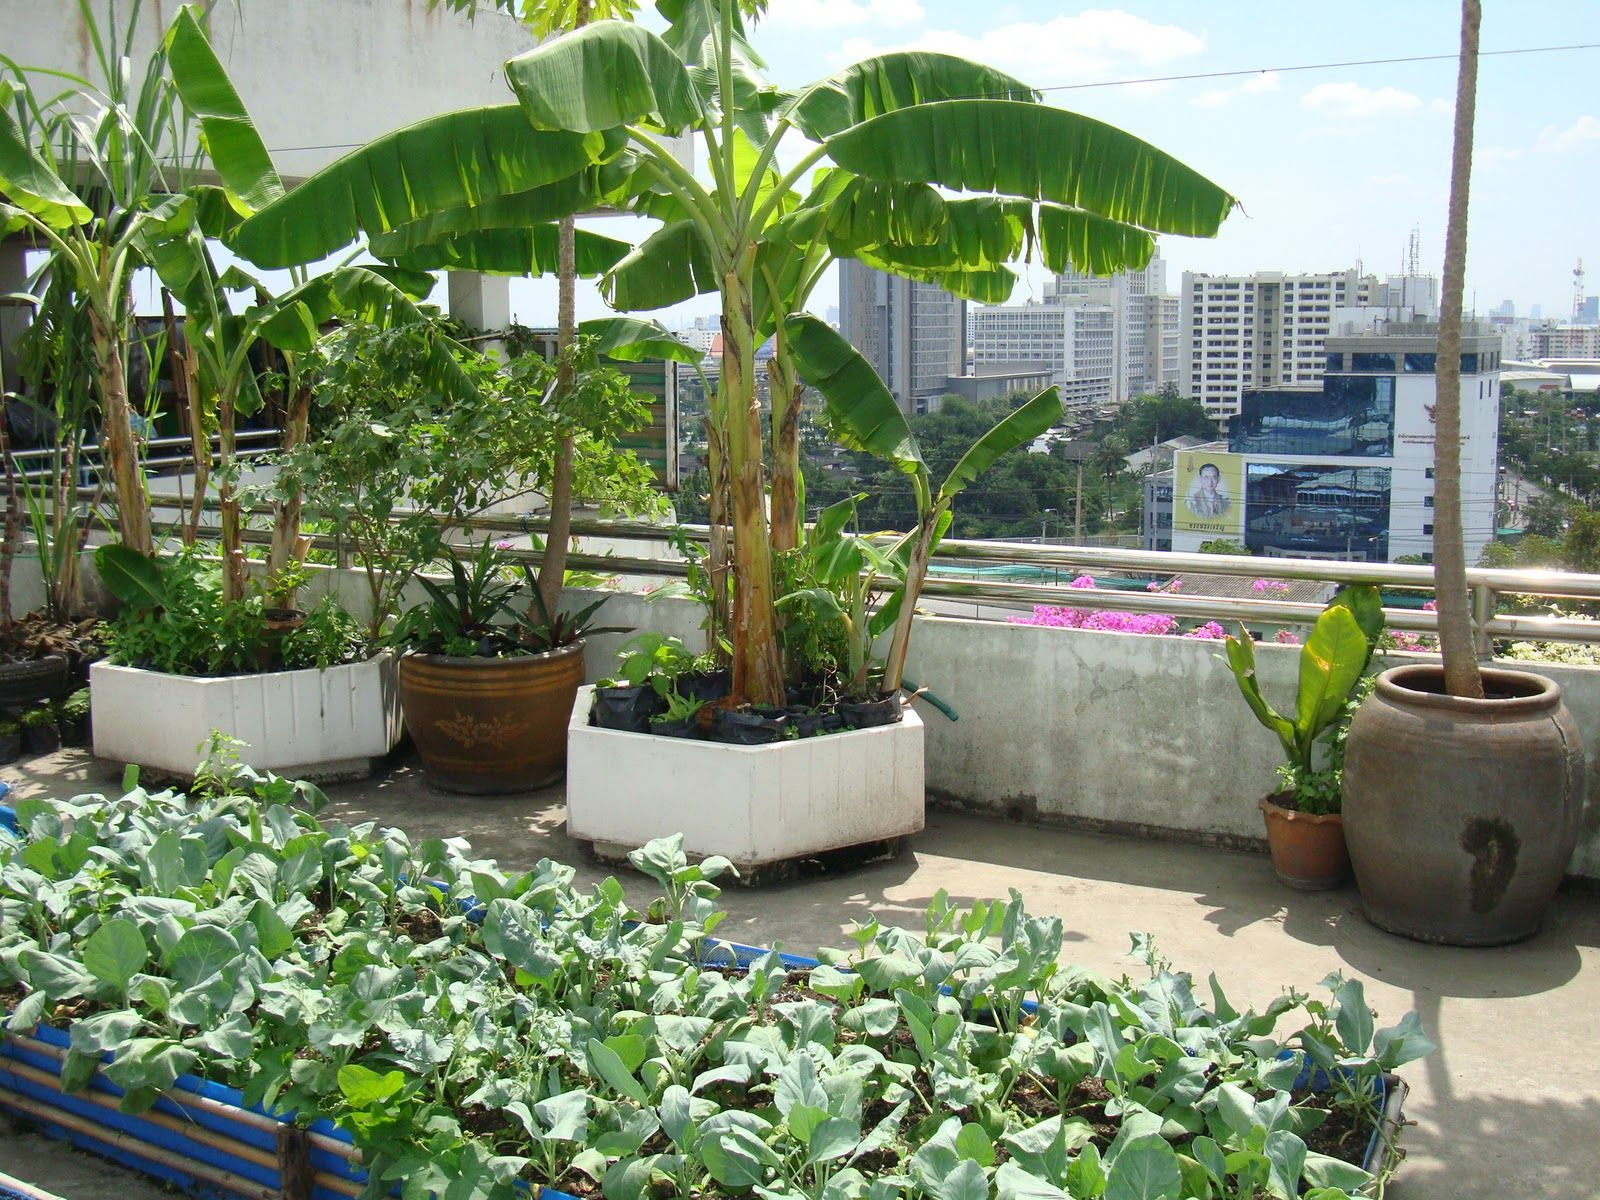 Rooftop garden creative landscape garden serenity for Terrace garden ideas